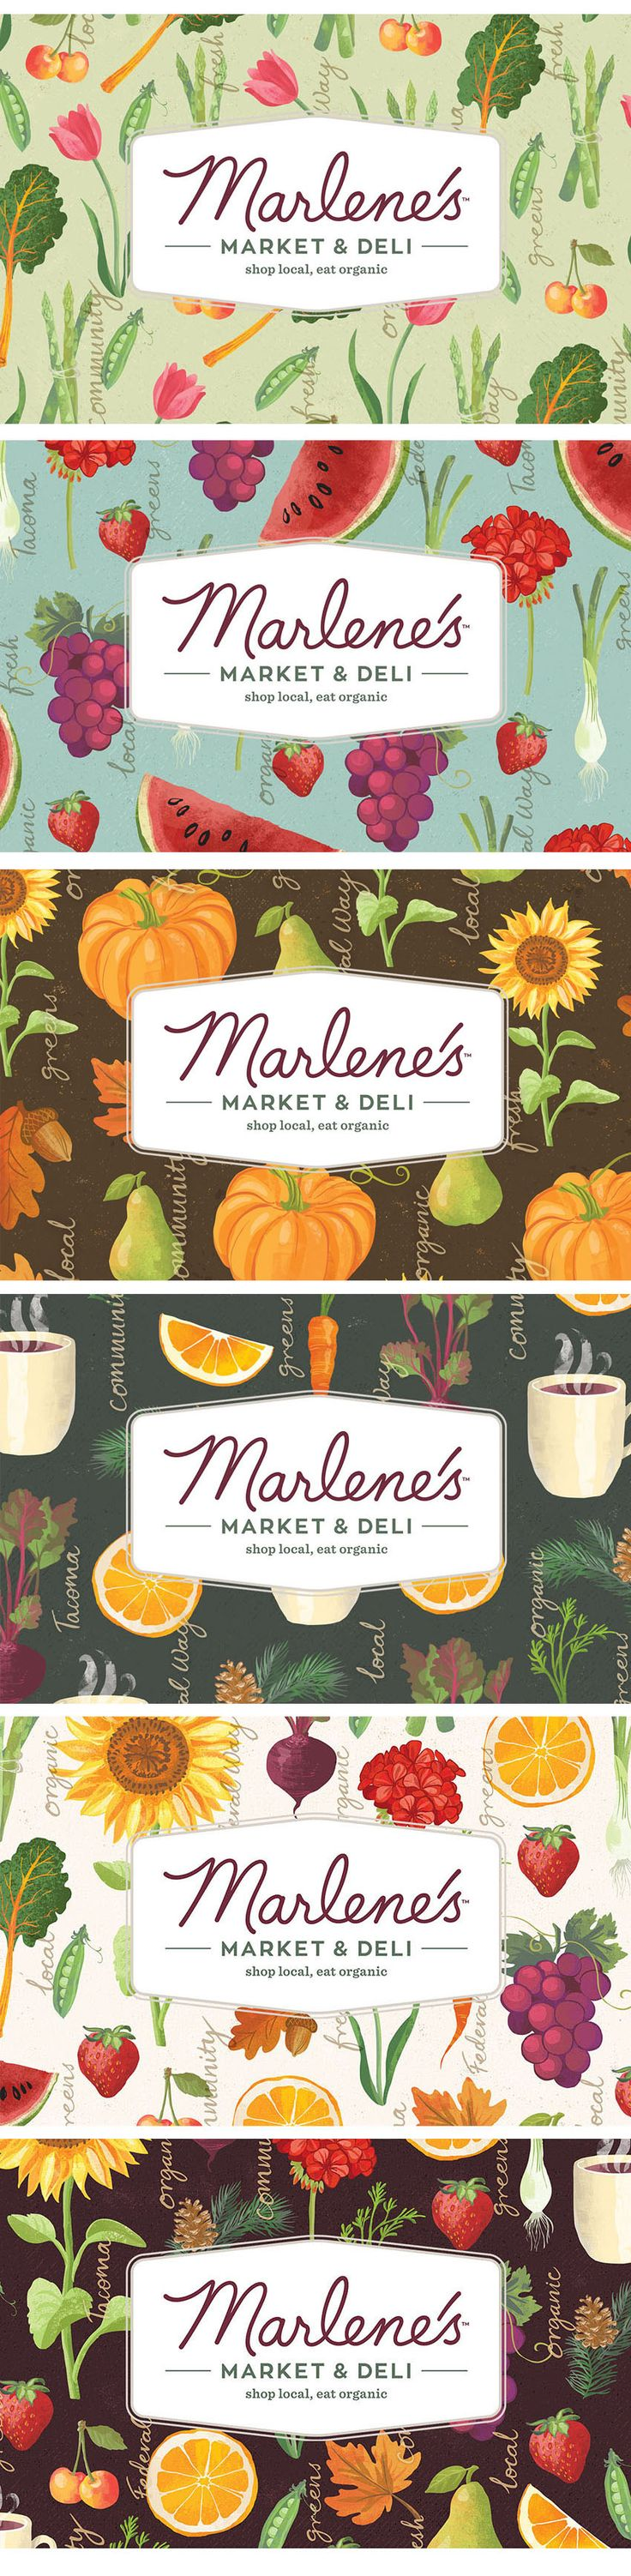 Last summer I was contacted by Seattle based design agency Modern Species  about a rebranding project for a organic market in Tacoma. They had seen my  foodie illustrations on Pinterest and felt that my approach would be  perfect for their client.Marlenes Market and Deli is a natural food store  that offers organic, sustainably produced foods, beauty care and household  products that was established in 1976, with two stores.  We started with a Skype call to discuss the specific…